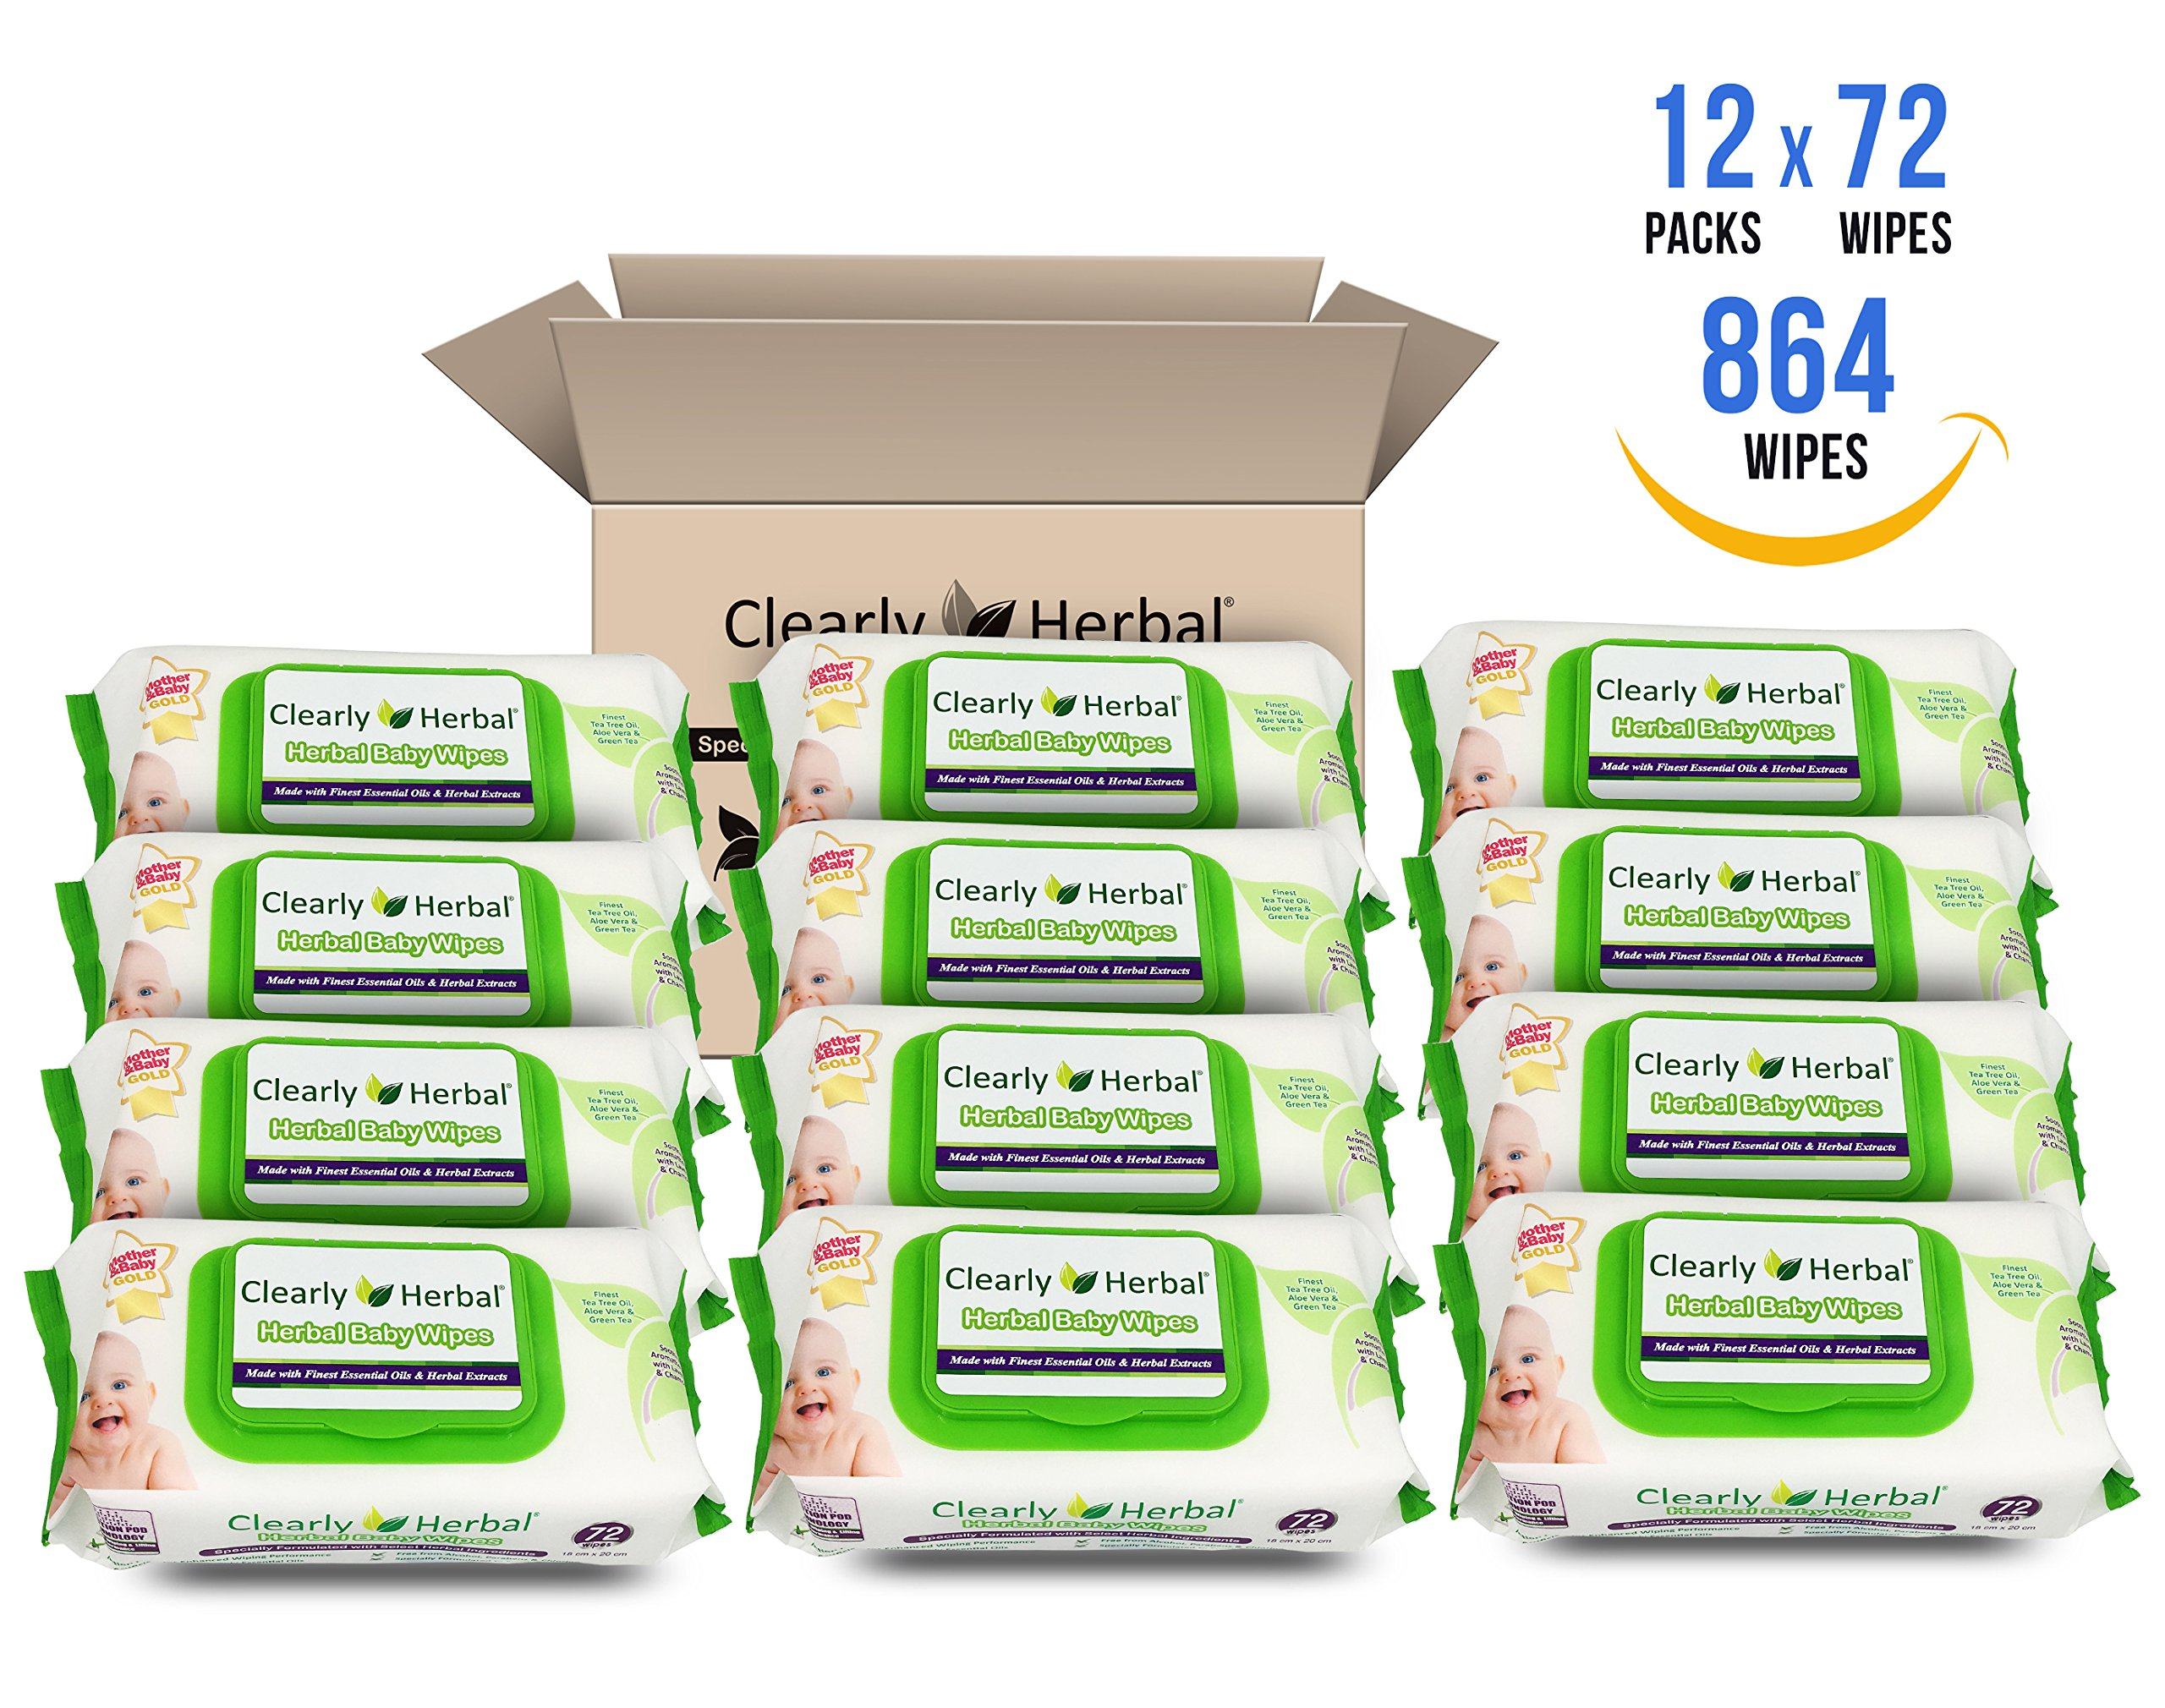 Clearly Herbal Gentle Baby Wipes 72 count ( 72 count x 12 packs = 864 wipes / case) )